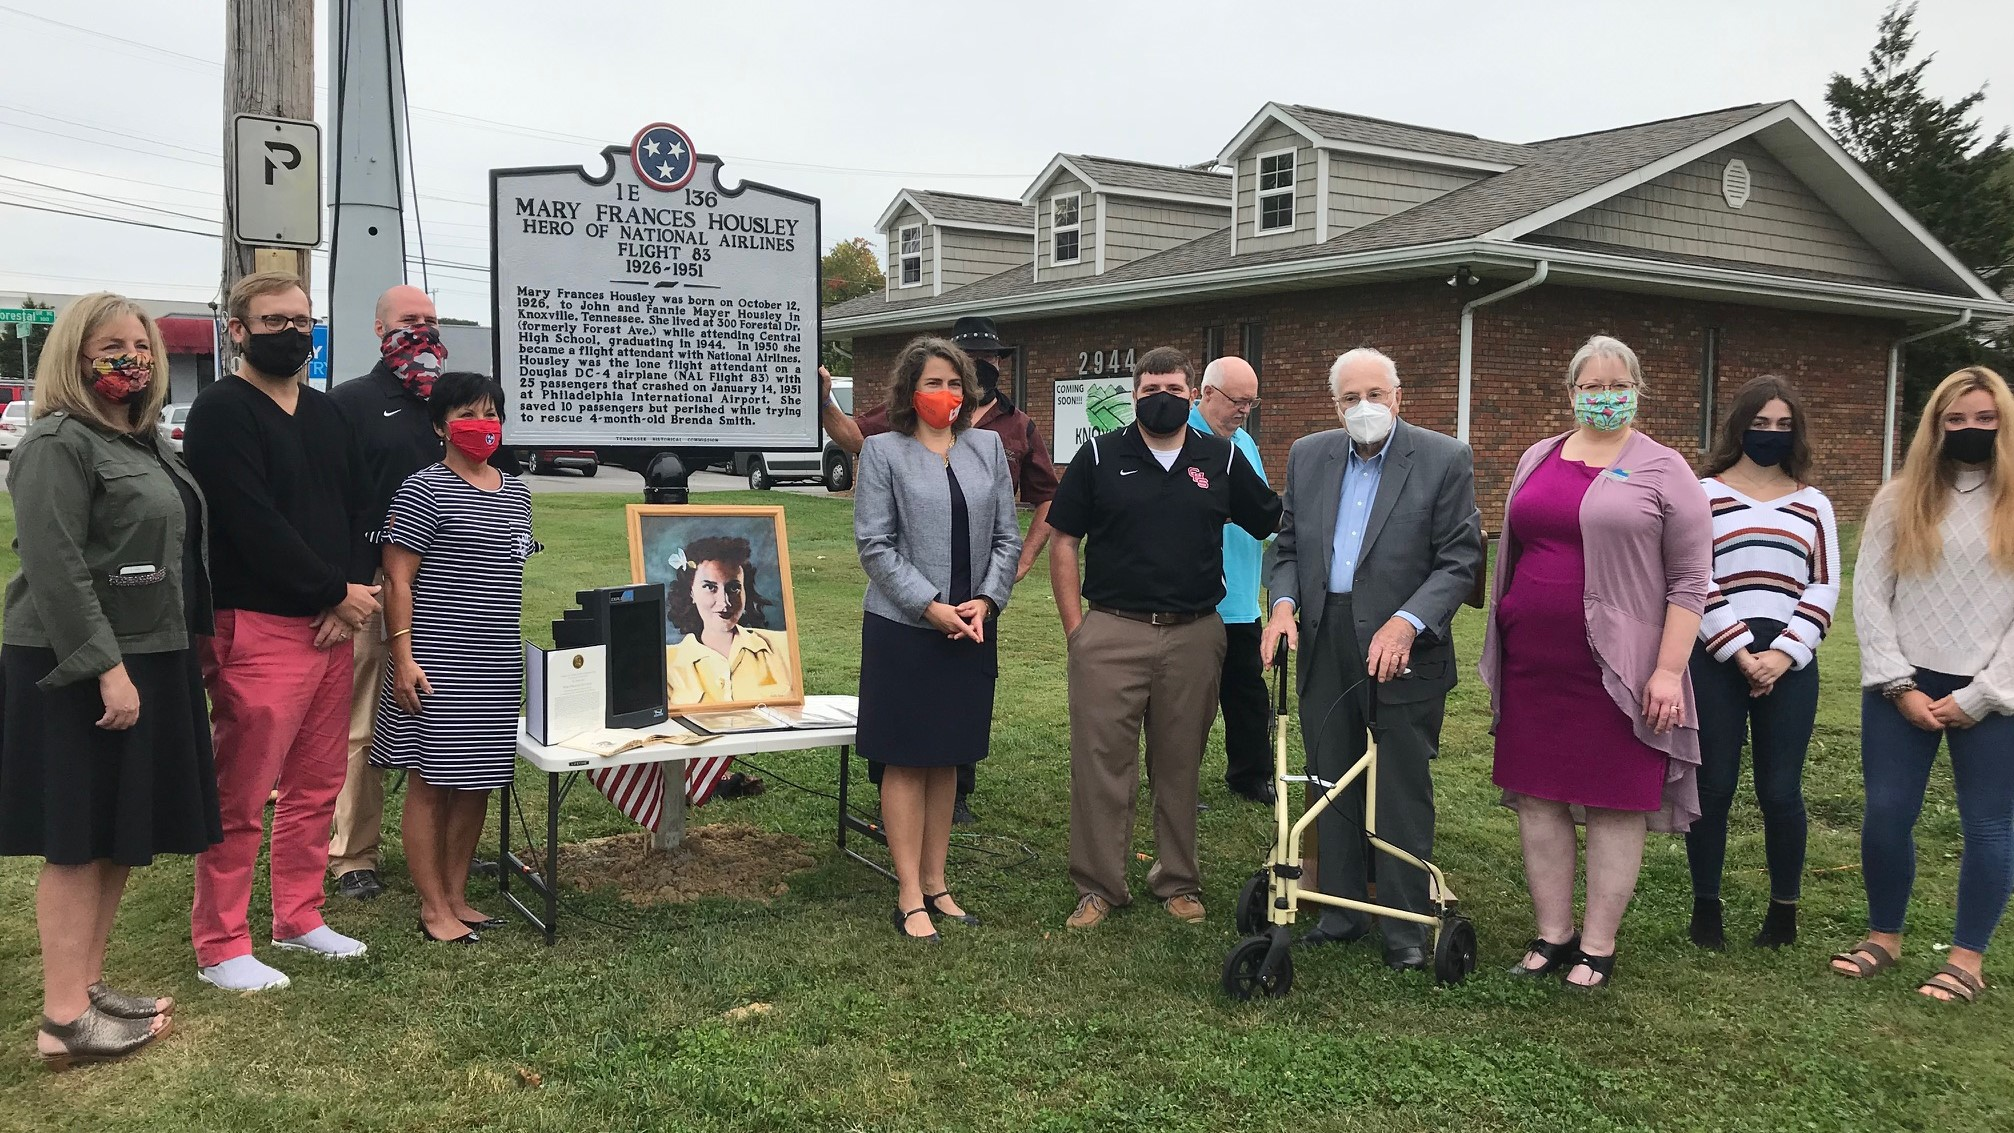 Community leaders gathered on Oct. 9 to remember Mary Frances Housley, a Central High School graduate who died in 1951, while trying ot rescue passengers from a plane crash.